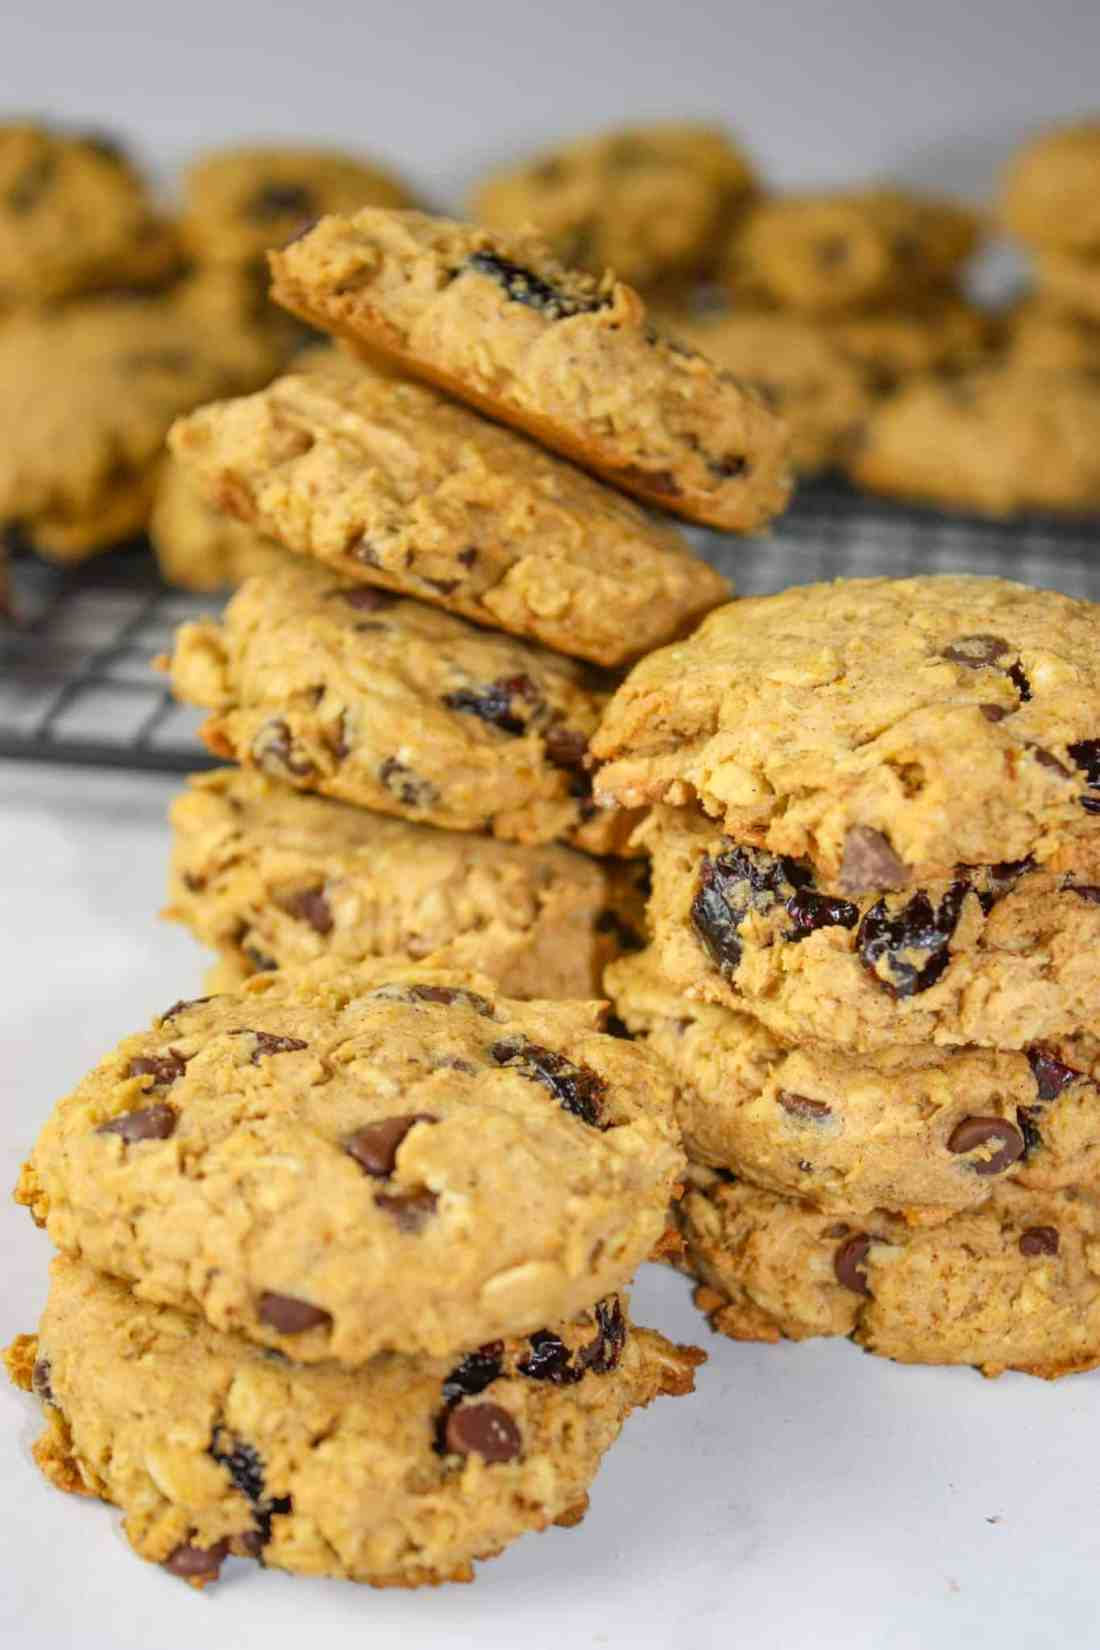 Flavours of Fall Cookies are loaded with seasonal ingredients. This gluten free cookie recipe is bursting with the tastes of pumpkin, cranberries, oatmeal and spices that bring to mind cooler weather days!